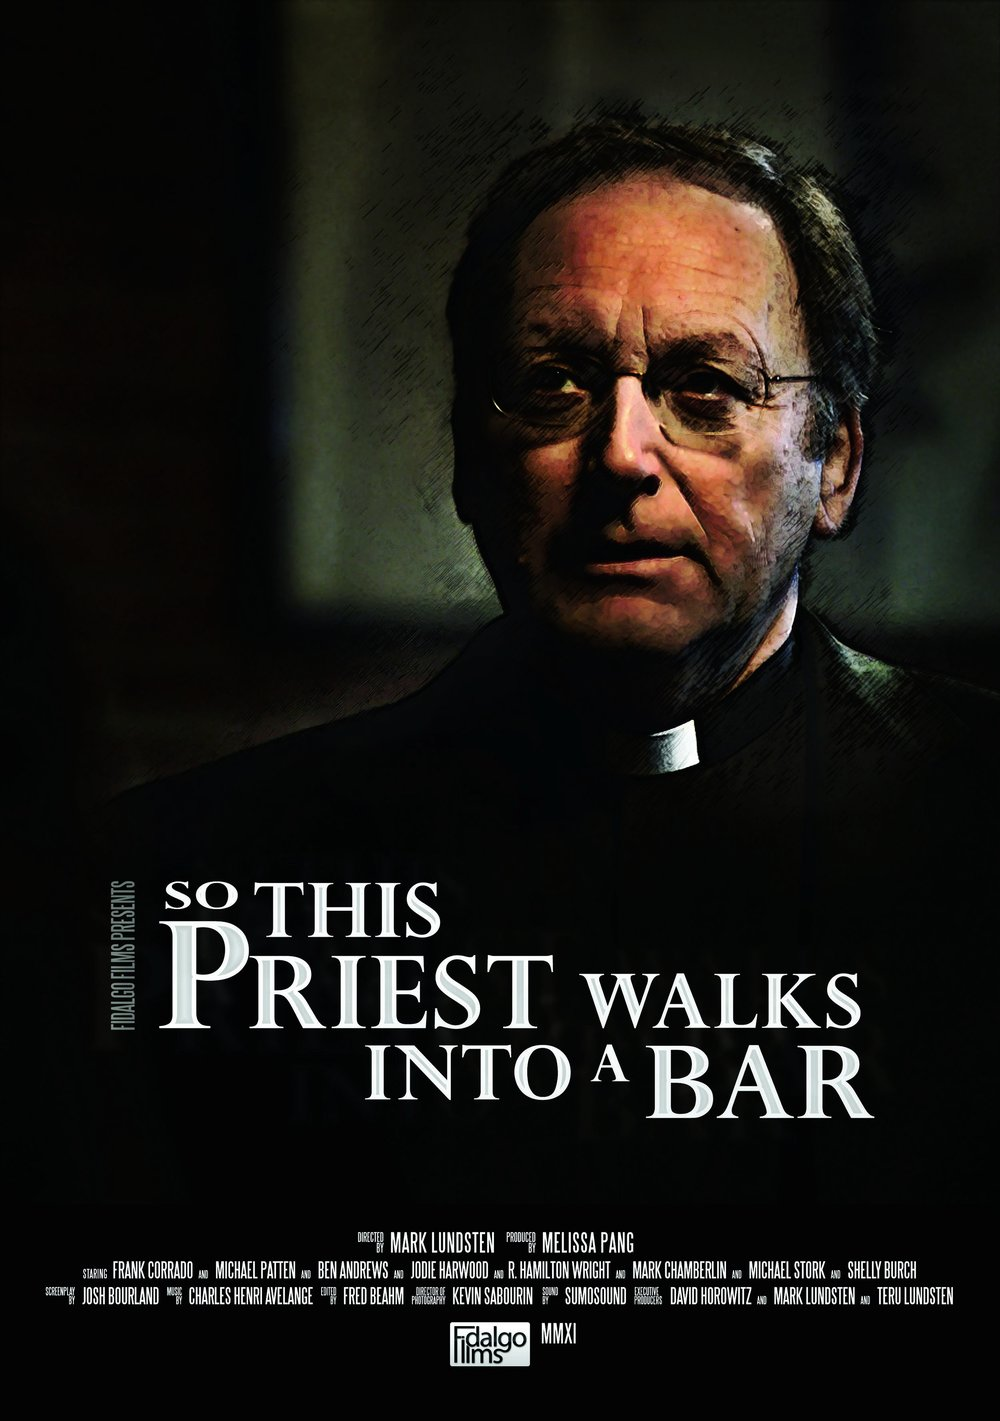 So This Priest Walks into a Bar (2011) Composer